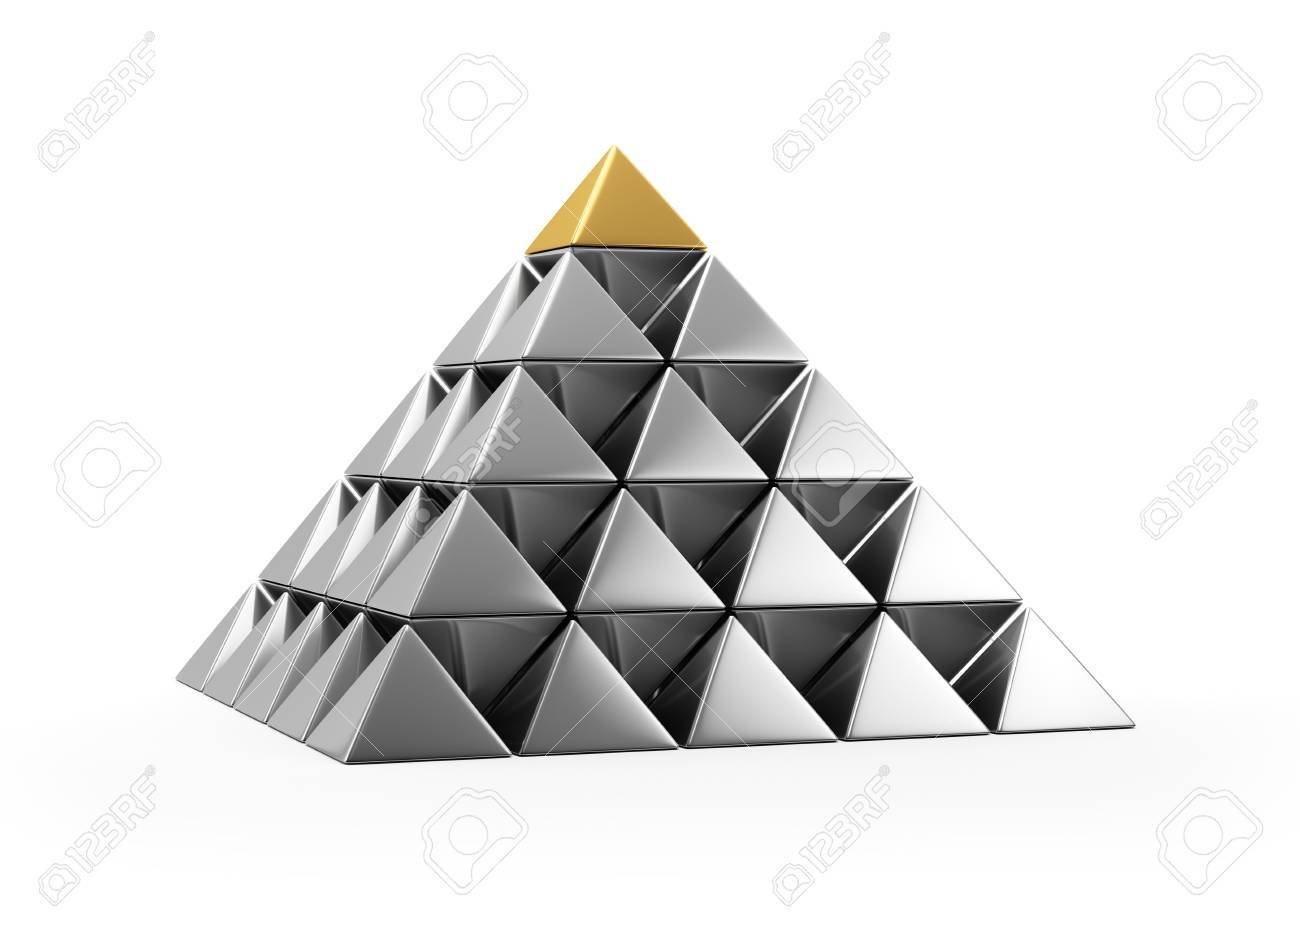 Pyramid Of Shiny Silver Small Pyramids Stock Photo, Picture And ...